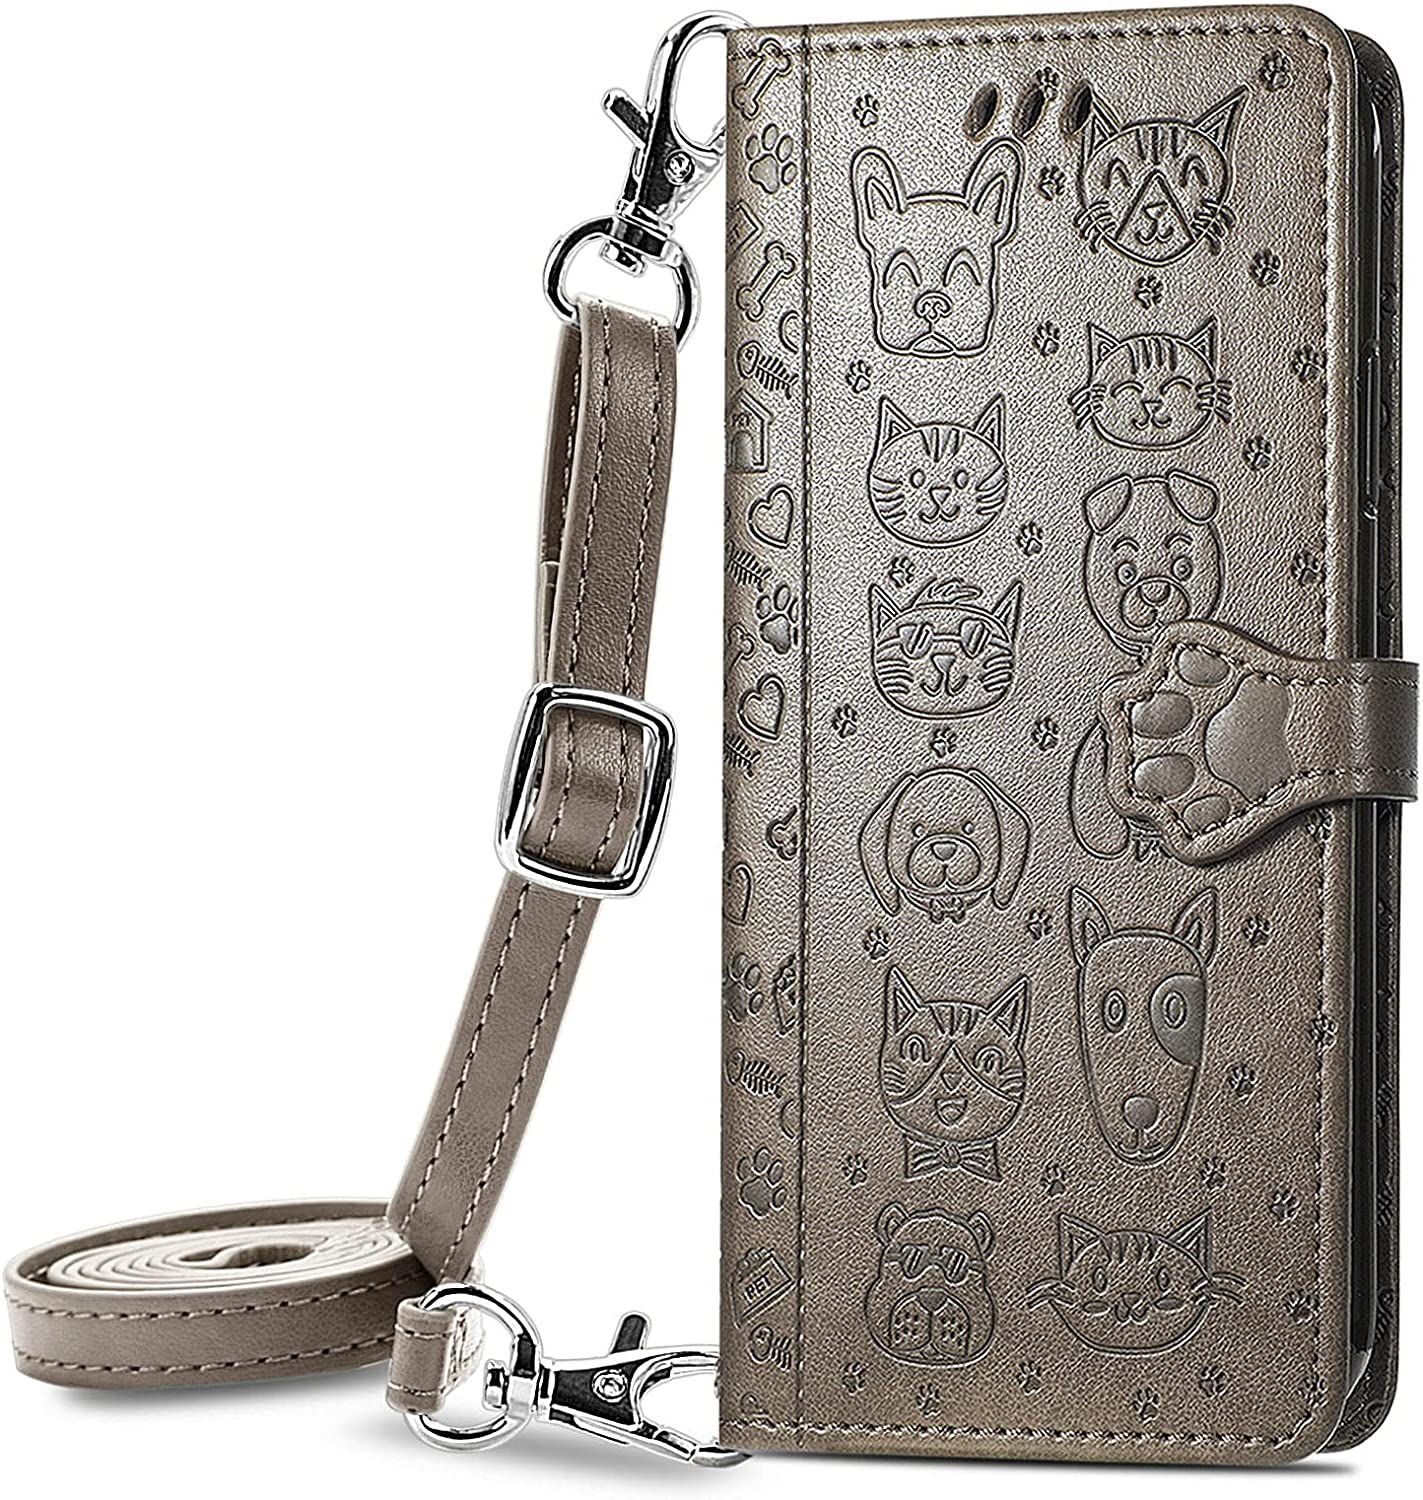 DAMONDY for Galaxy A32 5G Case,3D Cute Cat Wallet Card Holder Lanyard Neck Crossbody Detachable Strap Protective Flip Slim Cover Soft PU Leather Clasp for Samsung A32 5G -Grey